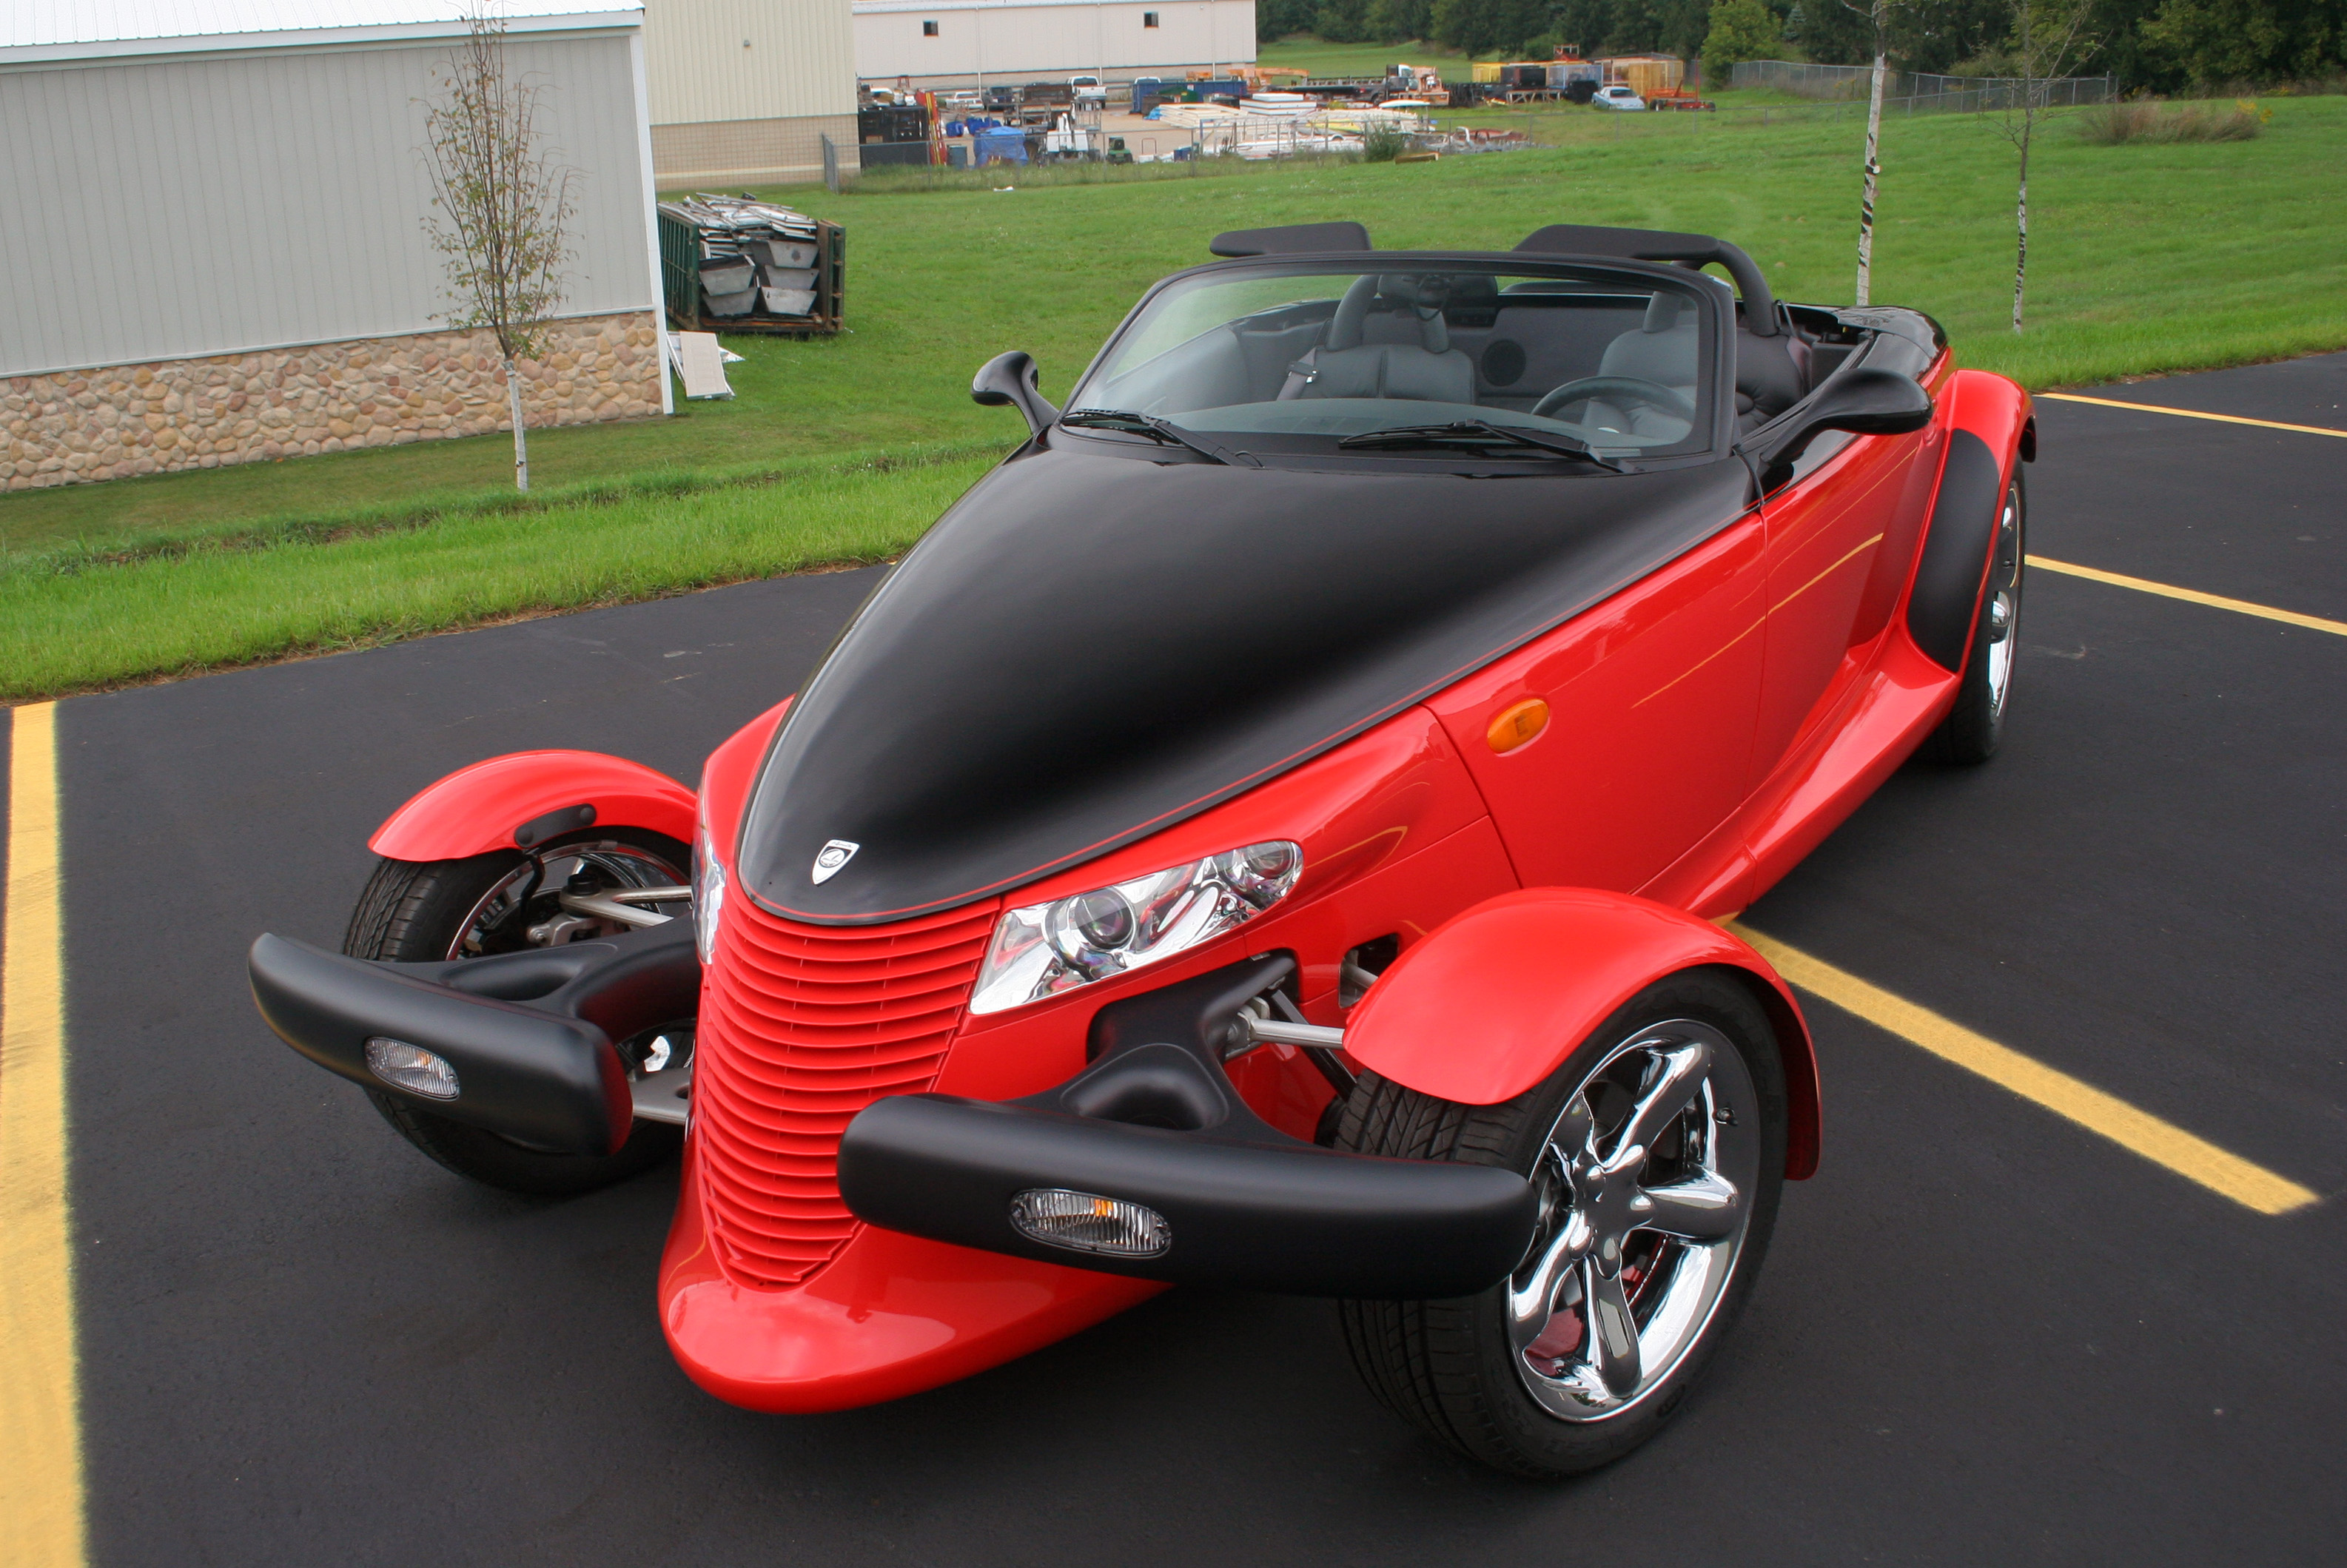 Plymouth Prowler 2000 #12